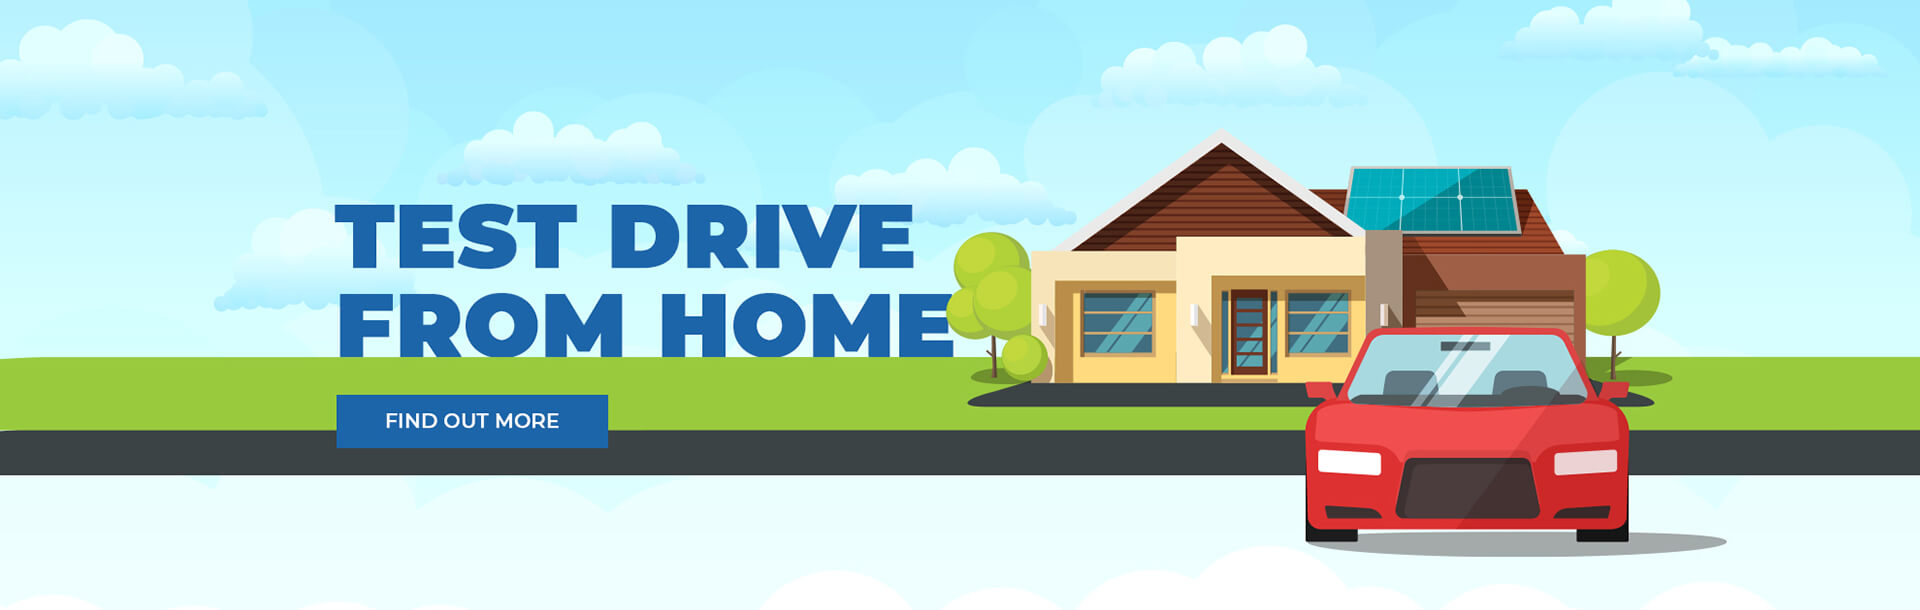 Test Drive From Home